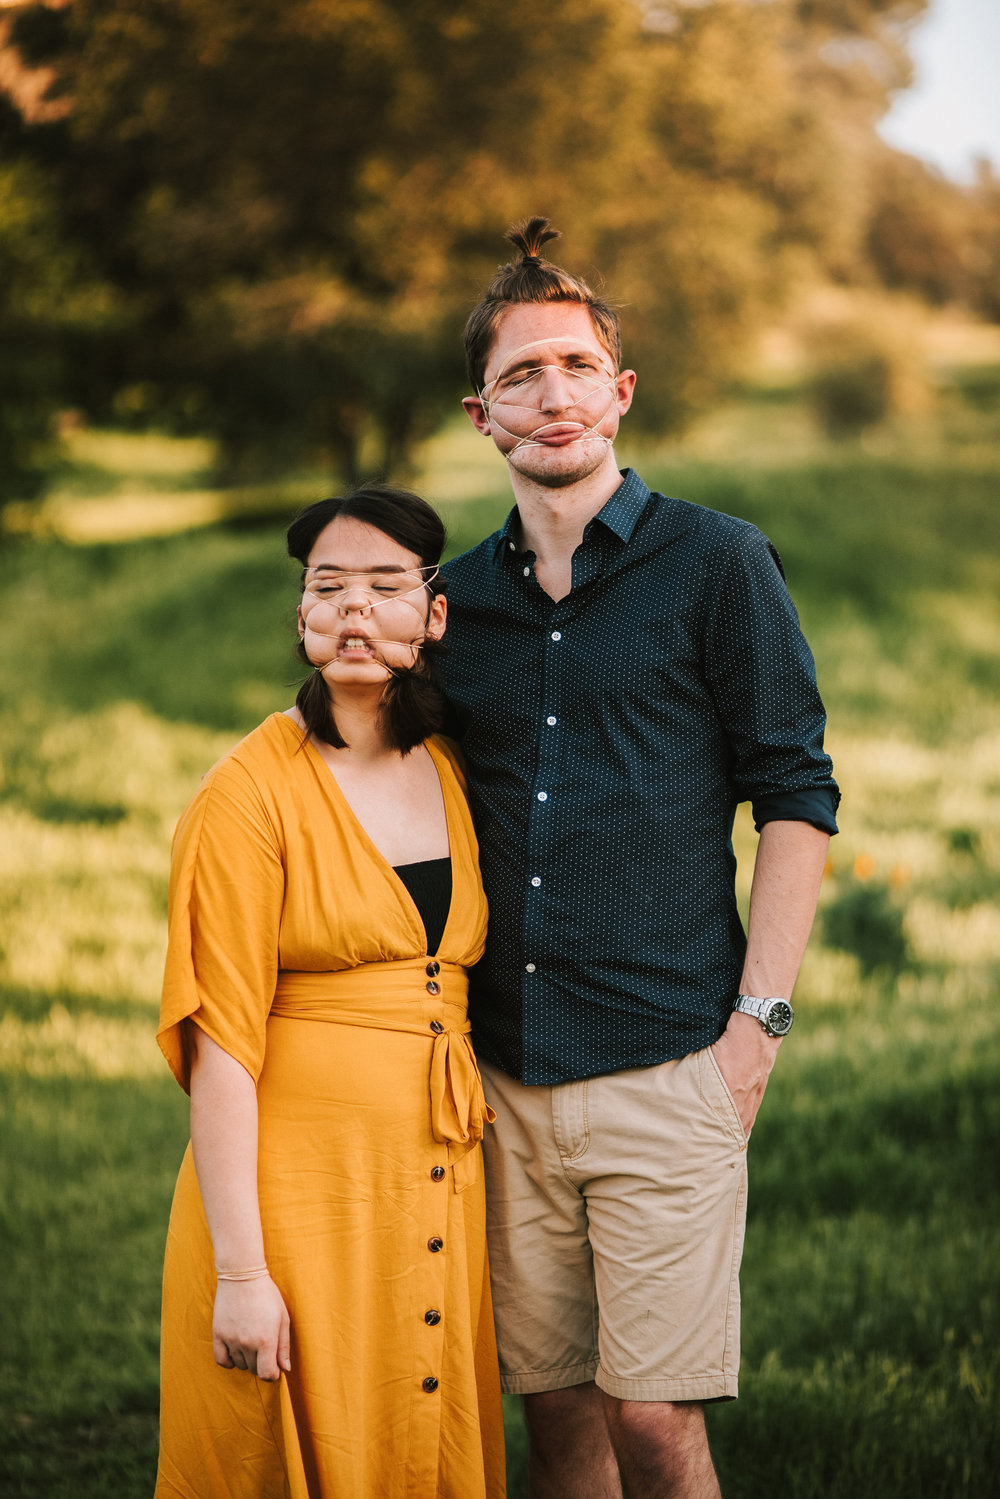 John and Thalia Rubber Band Face - Jake and Kim Photography 2018 74.jpg